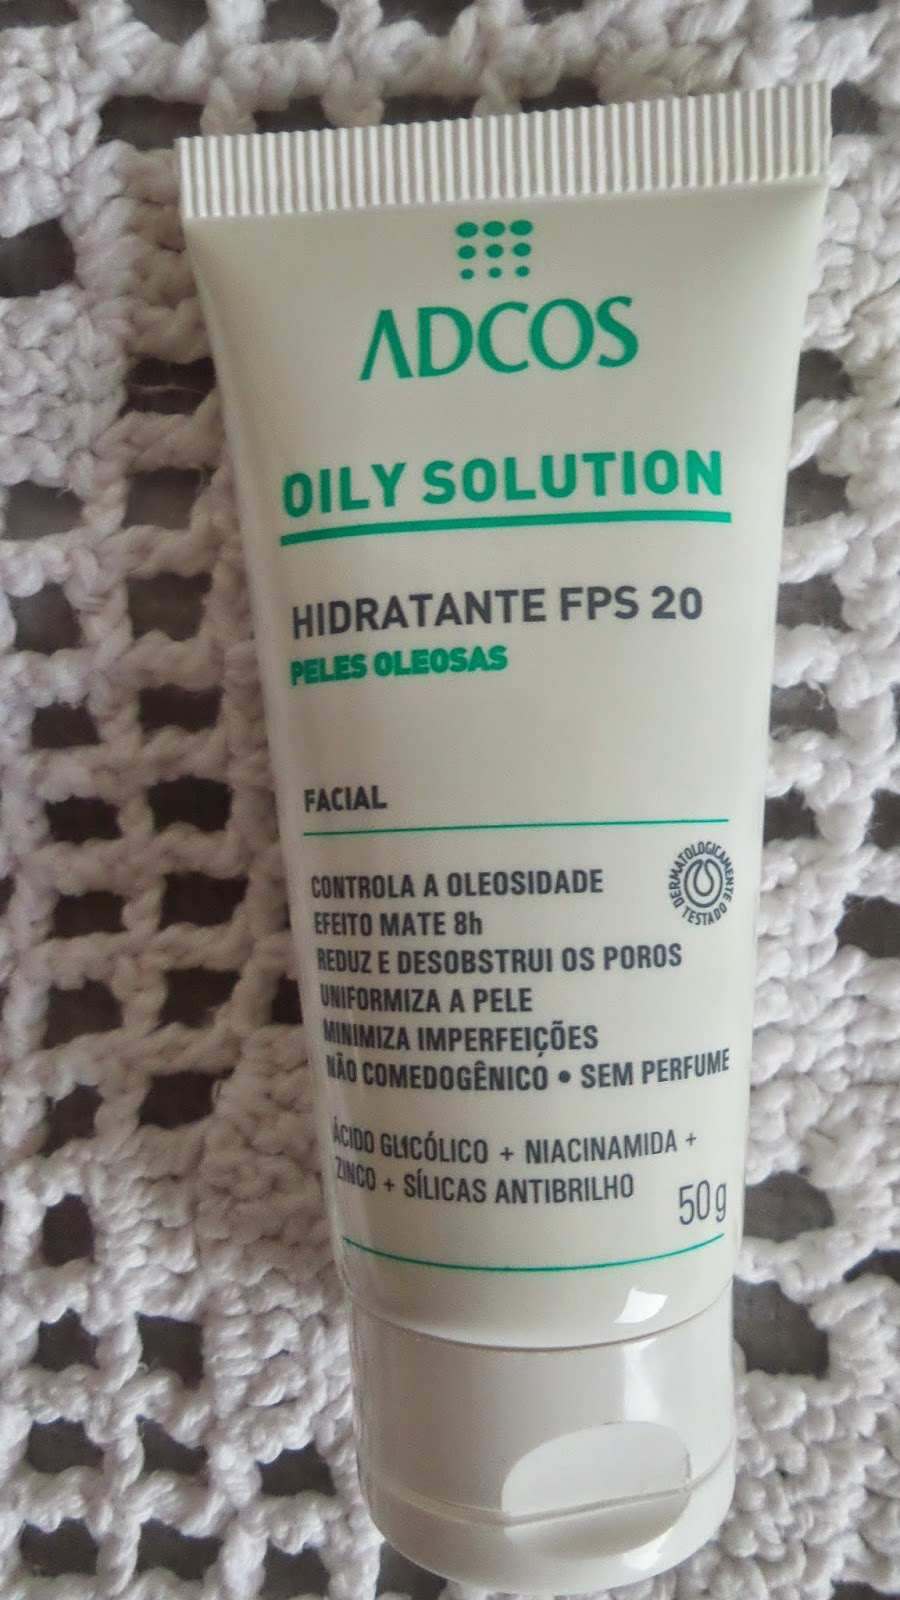 Hidratante FPS 20 Oily Solution Adcos